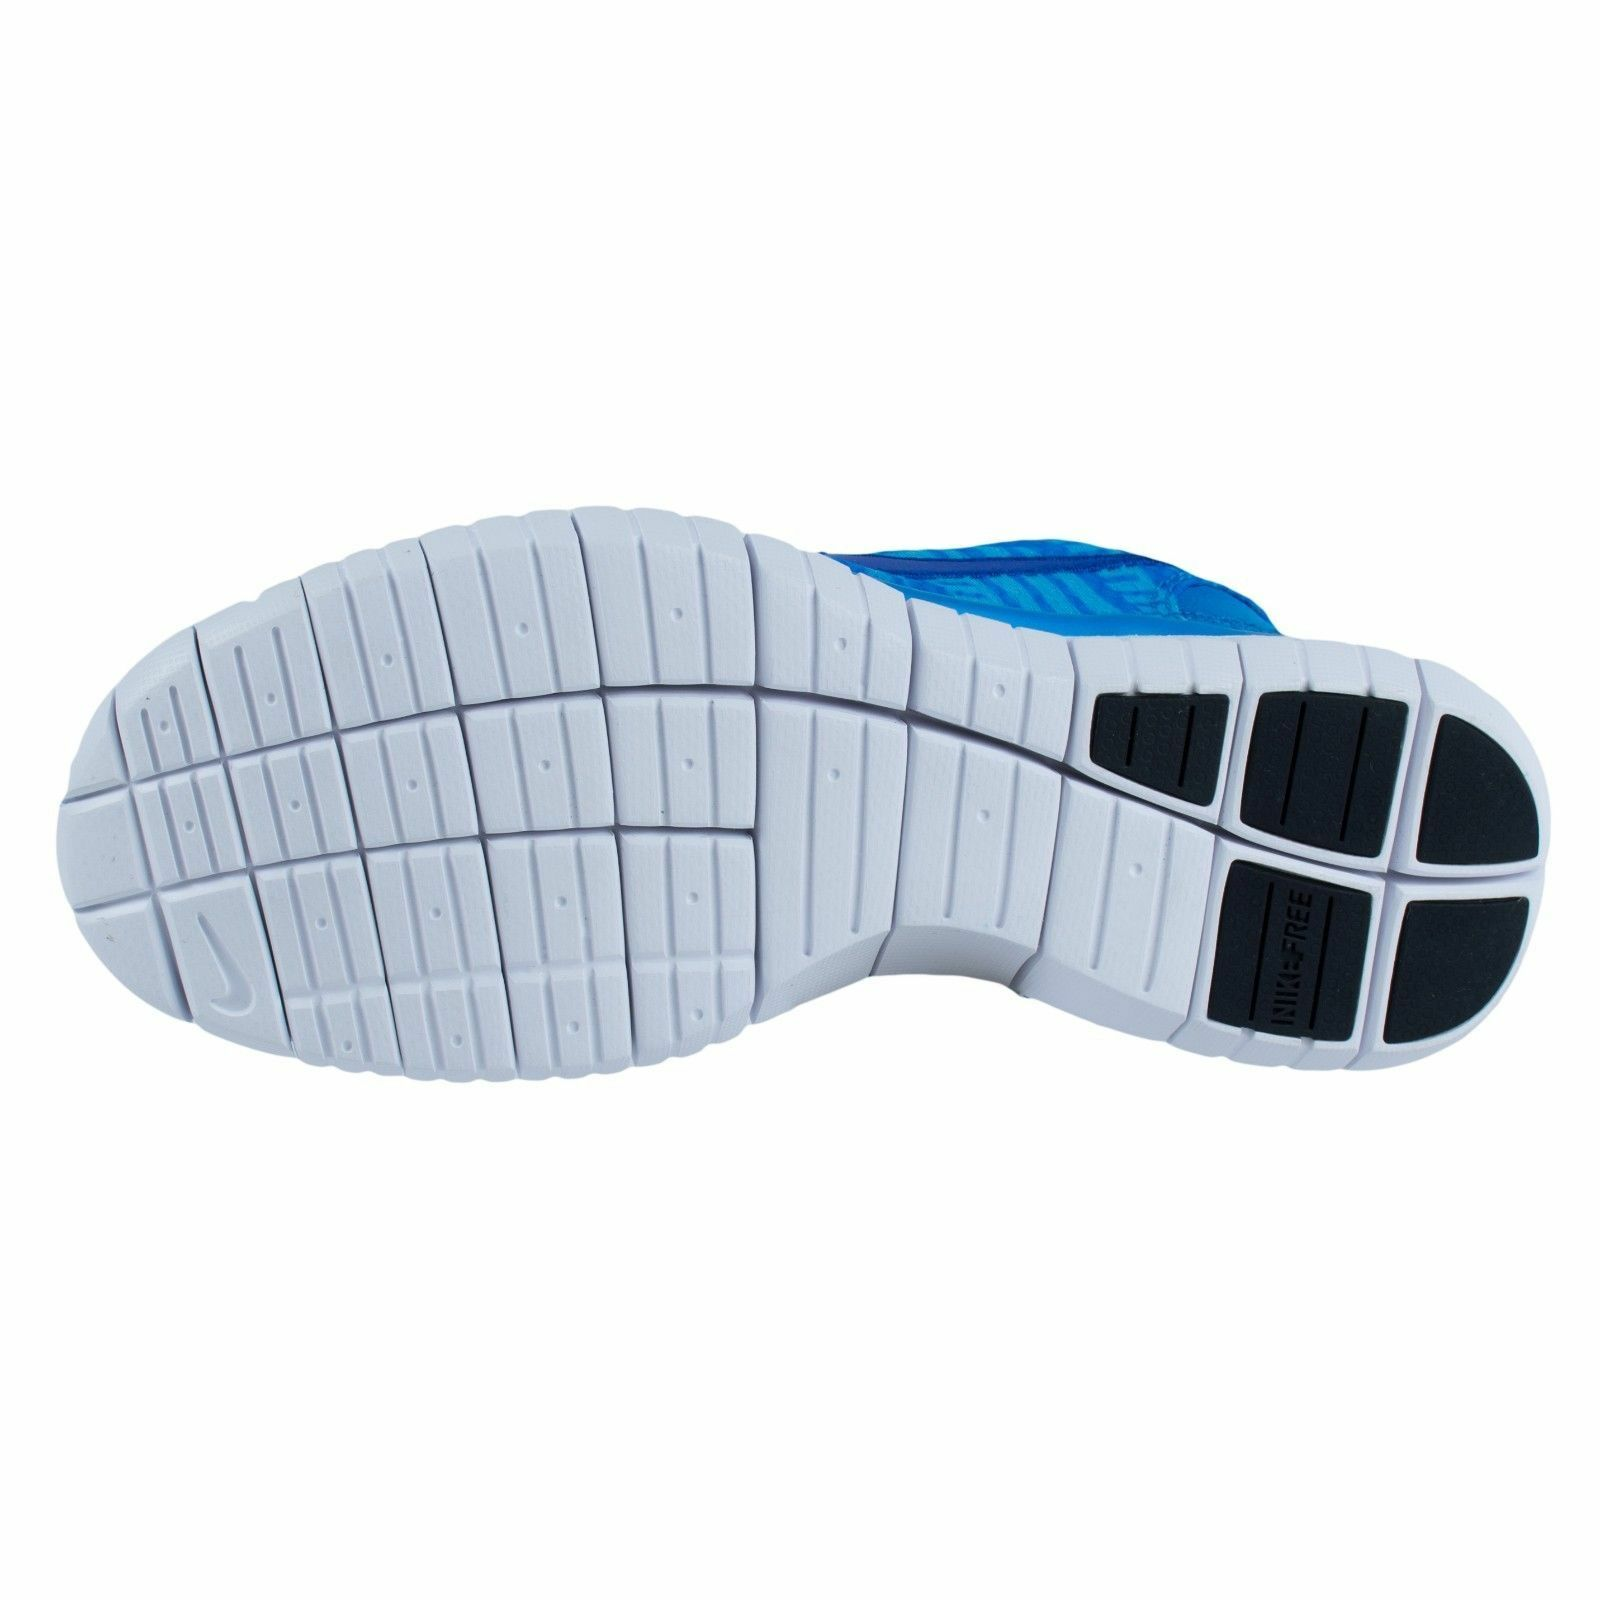 official site cheap for sale new products Nike OG '14 Breeze Running Shoes Photo Blue HYPER Cobalt 644394 ...